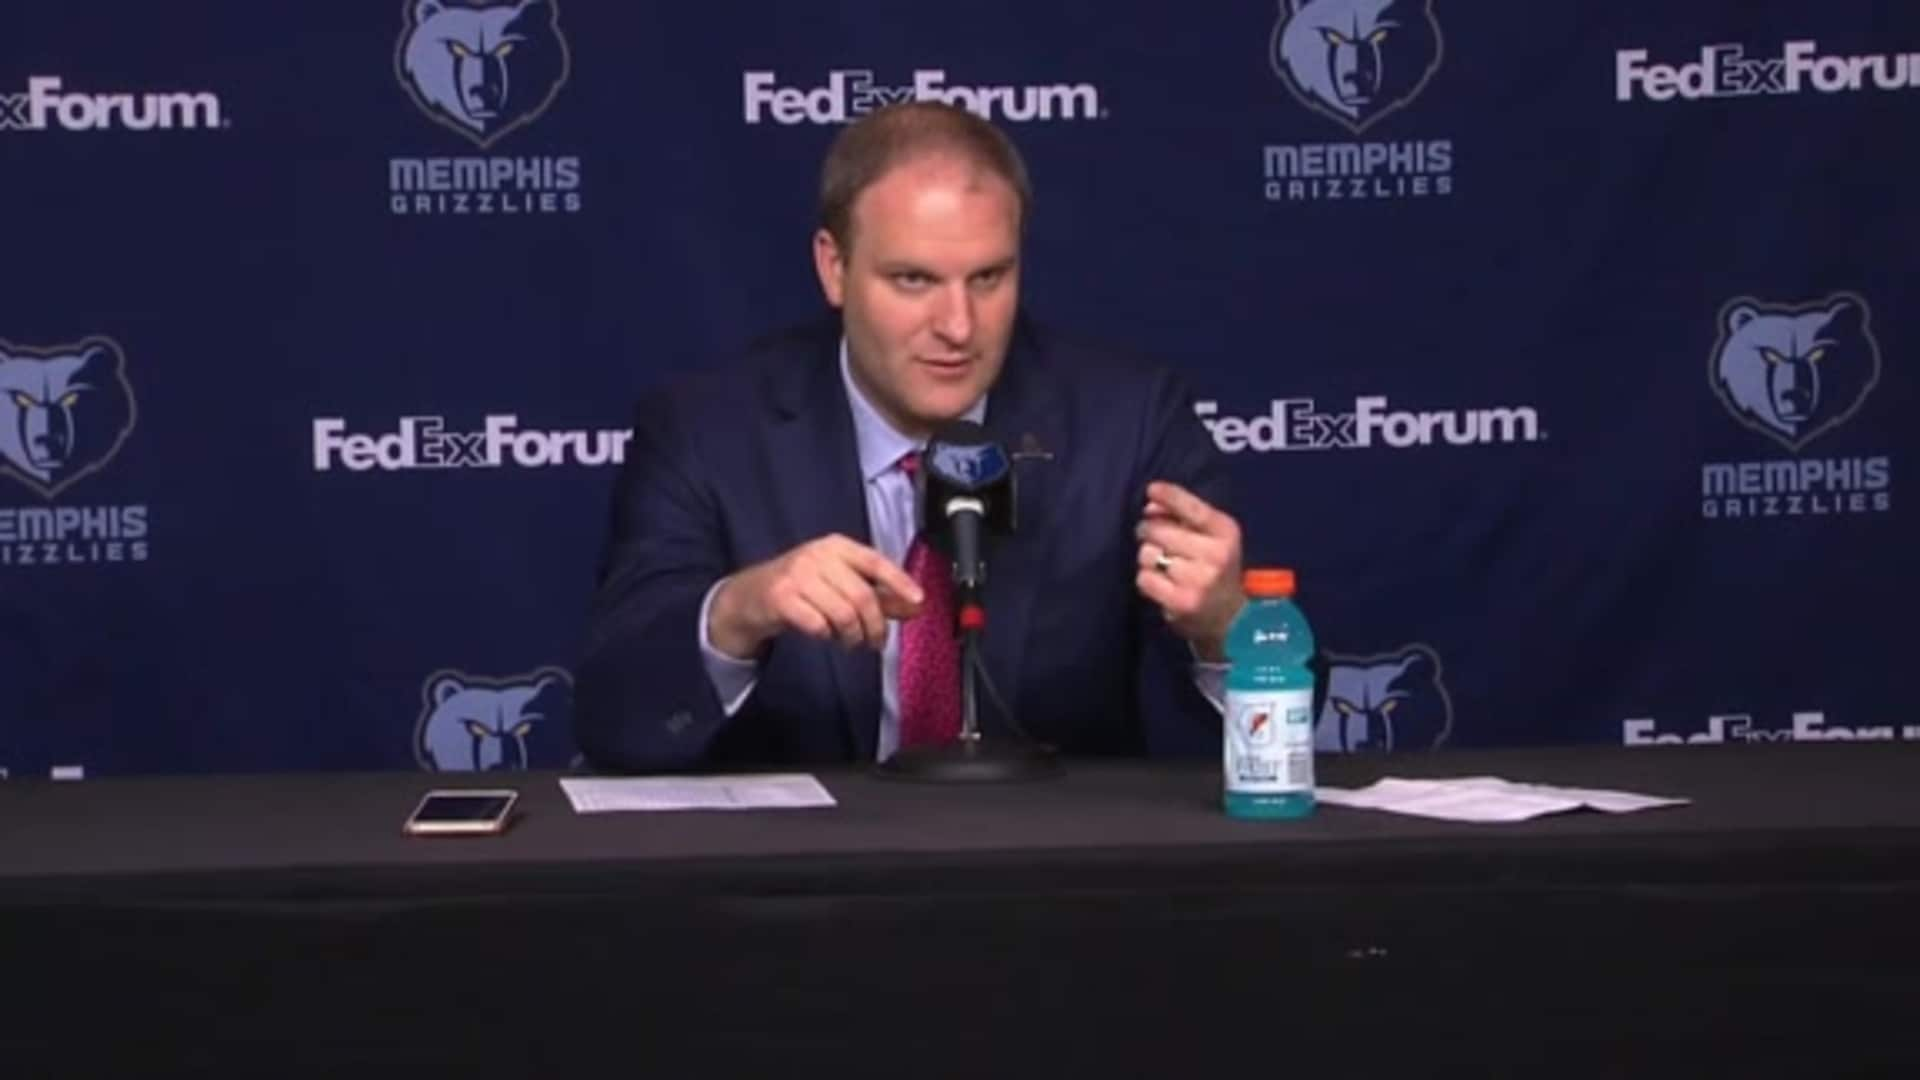 MEMvMIL: Postgame press conference 12.13.19